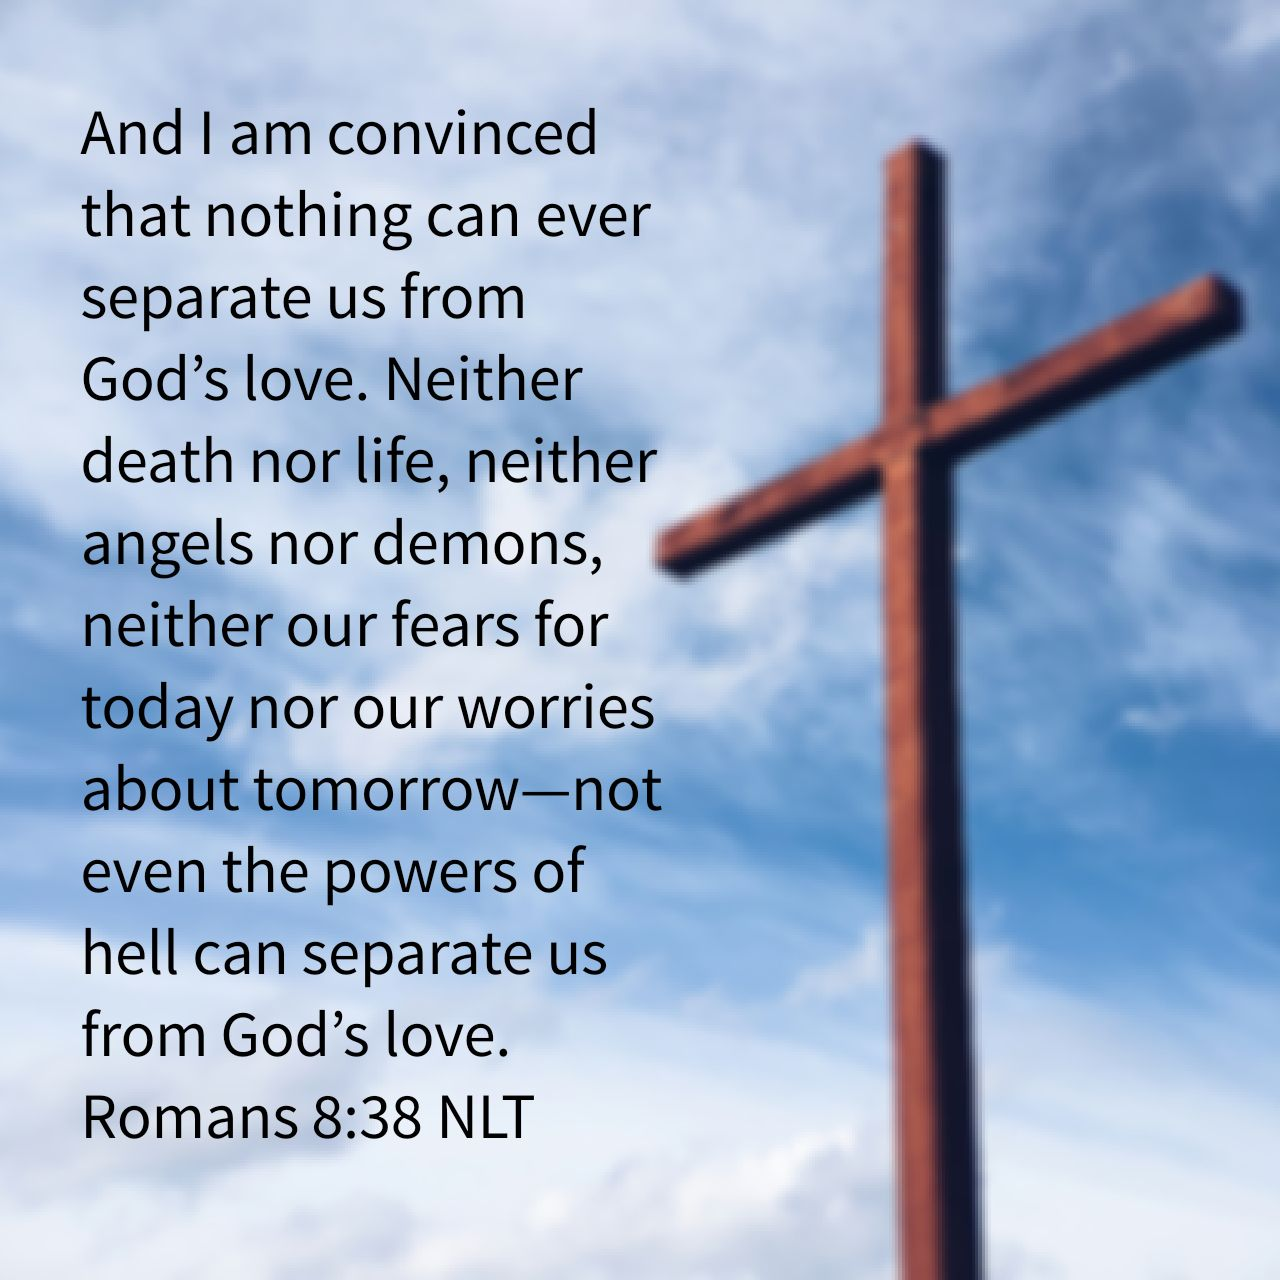 And I am convinced that nothing can ever separate us from God's love. Neither death nor life, neither angels nor demons, neither our fears for today nor our worries about tomorrow—not even the powers of hell can separate us from God's love. - Romans 8:38 NLT